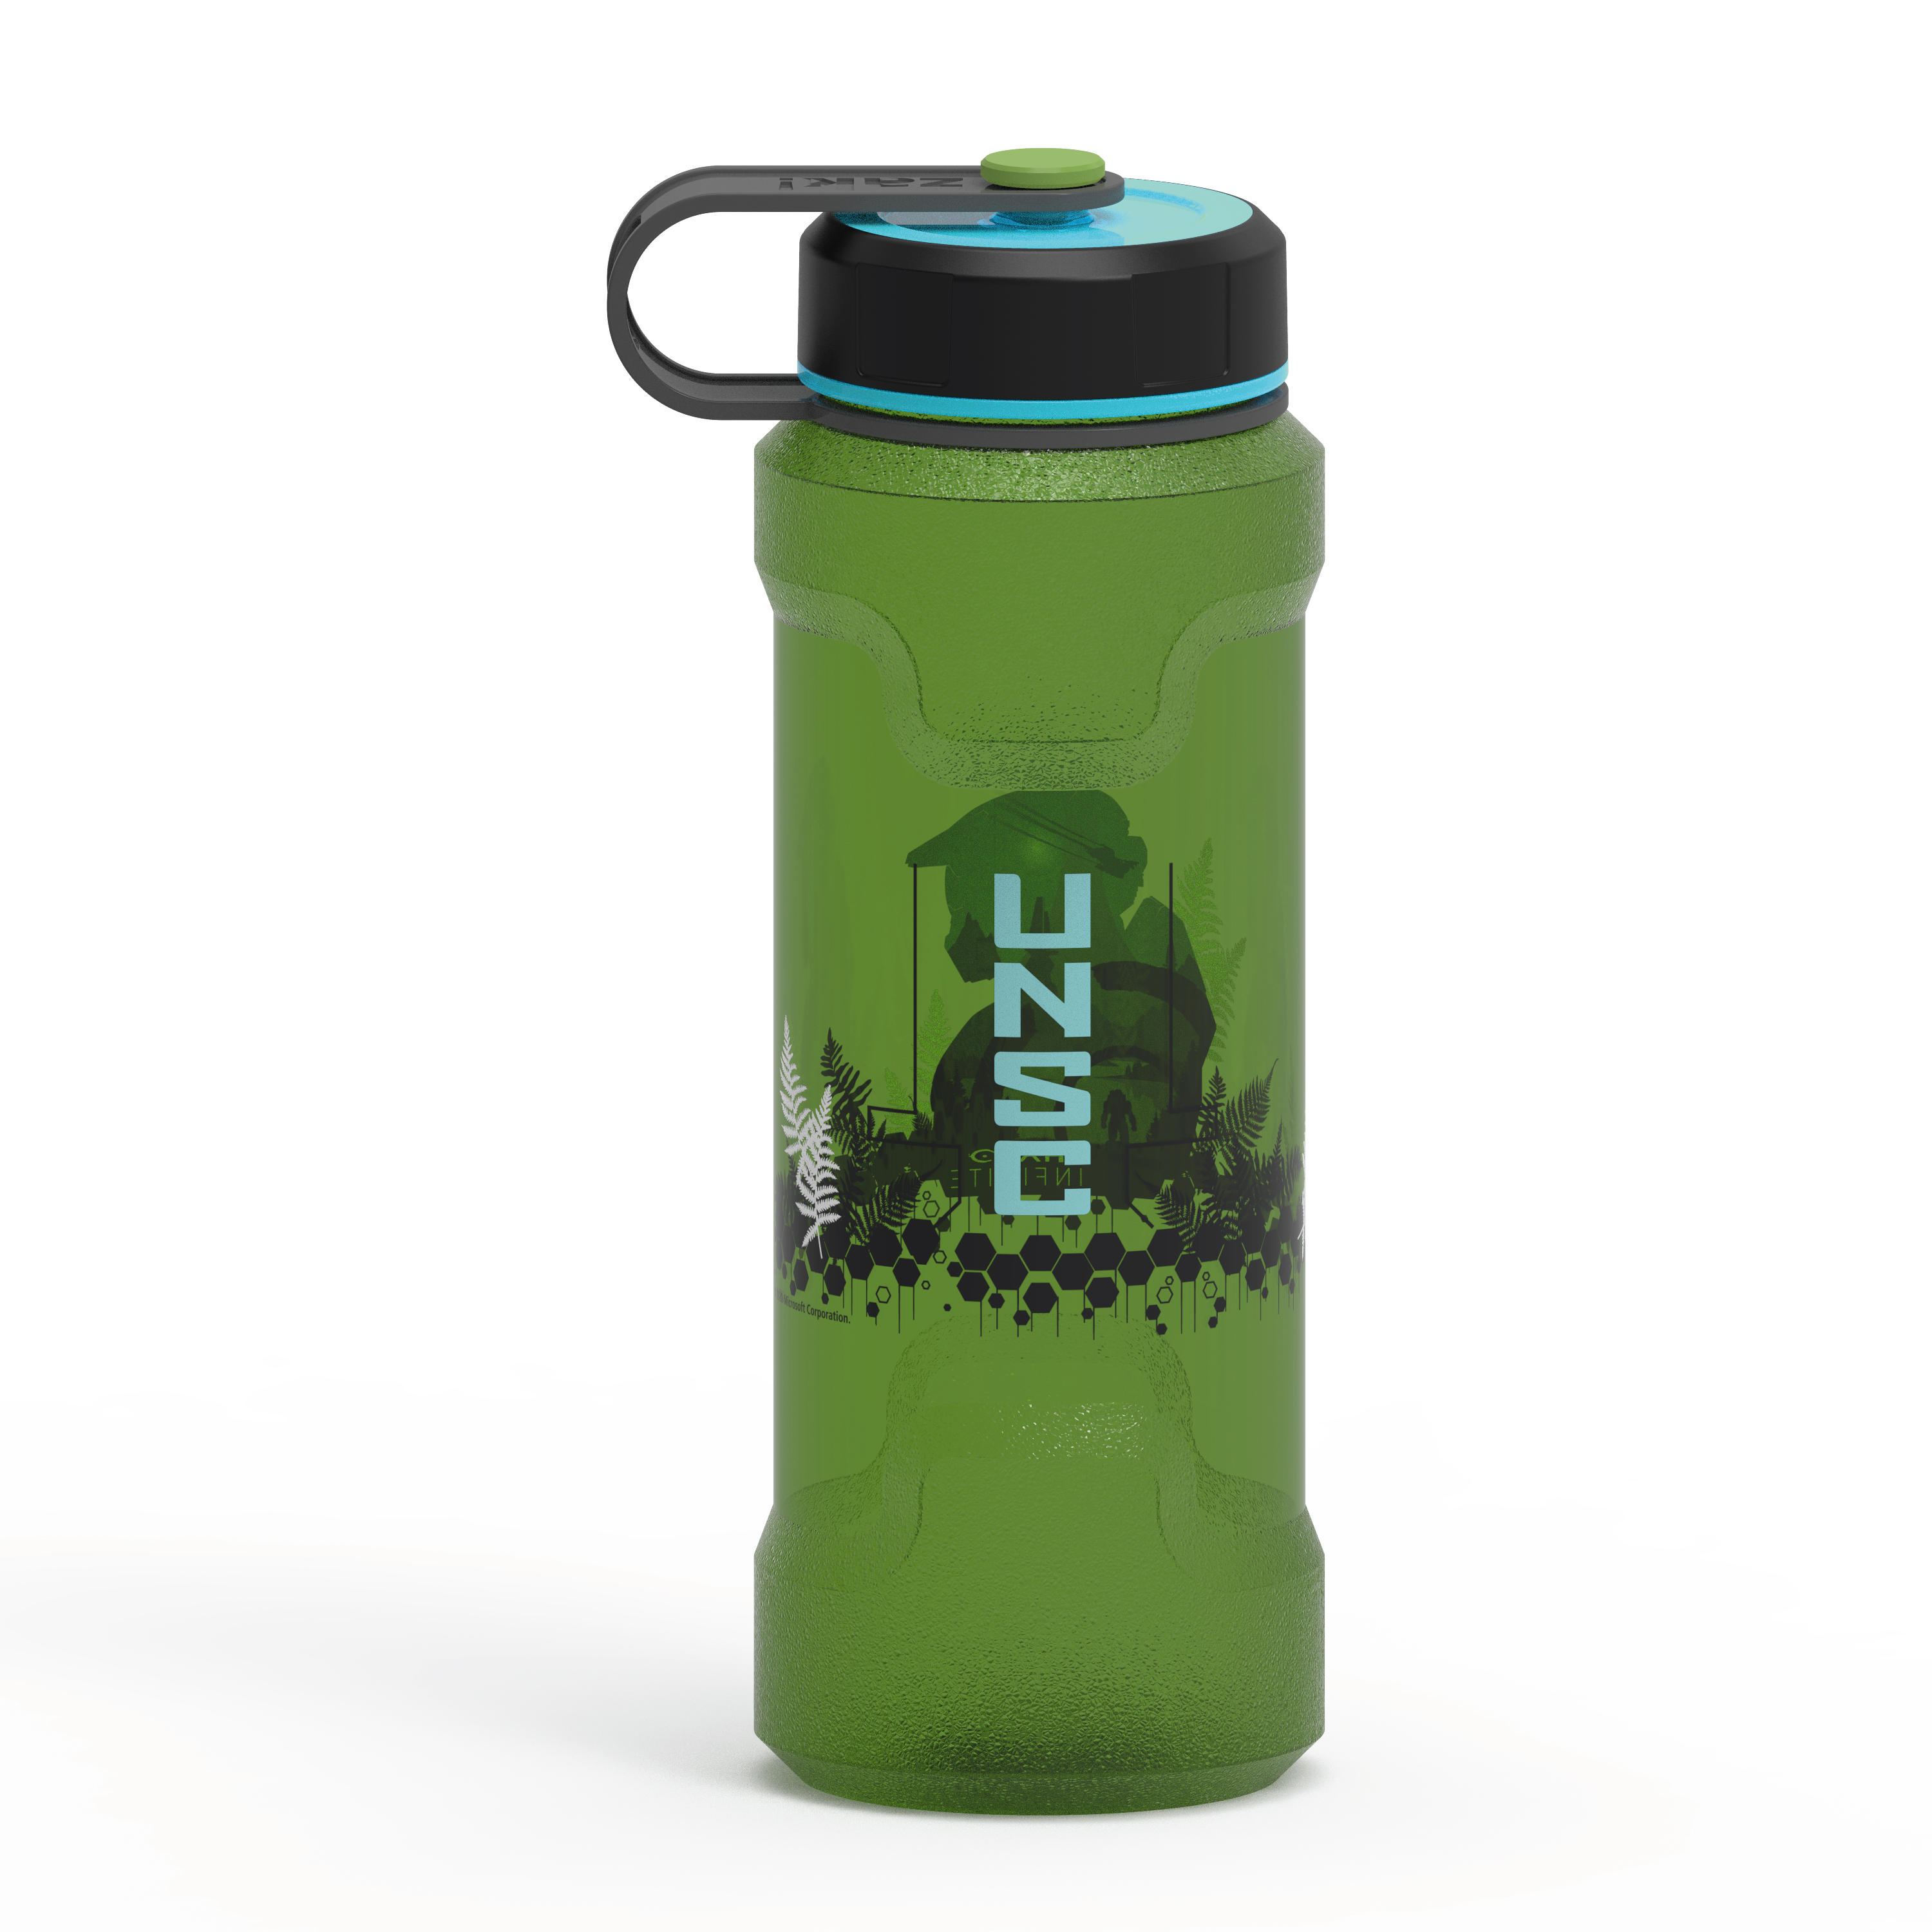 Halo 36 ounce Reusable Plastic Water Bottle, United Nations Space Command slideshow image 3